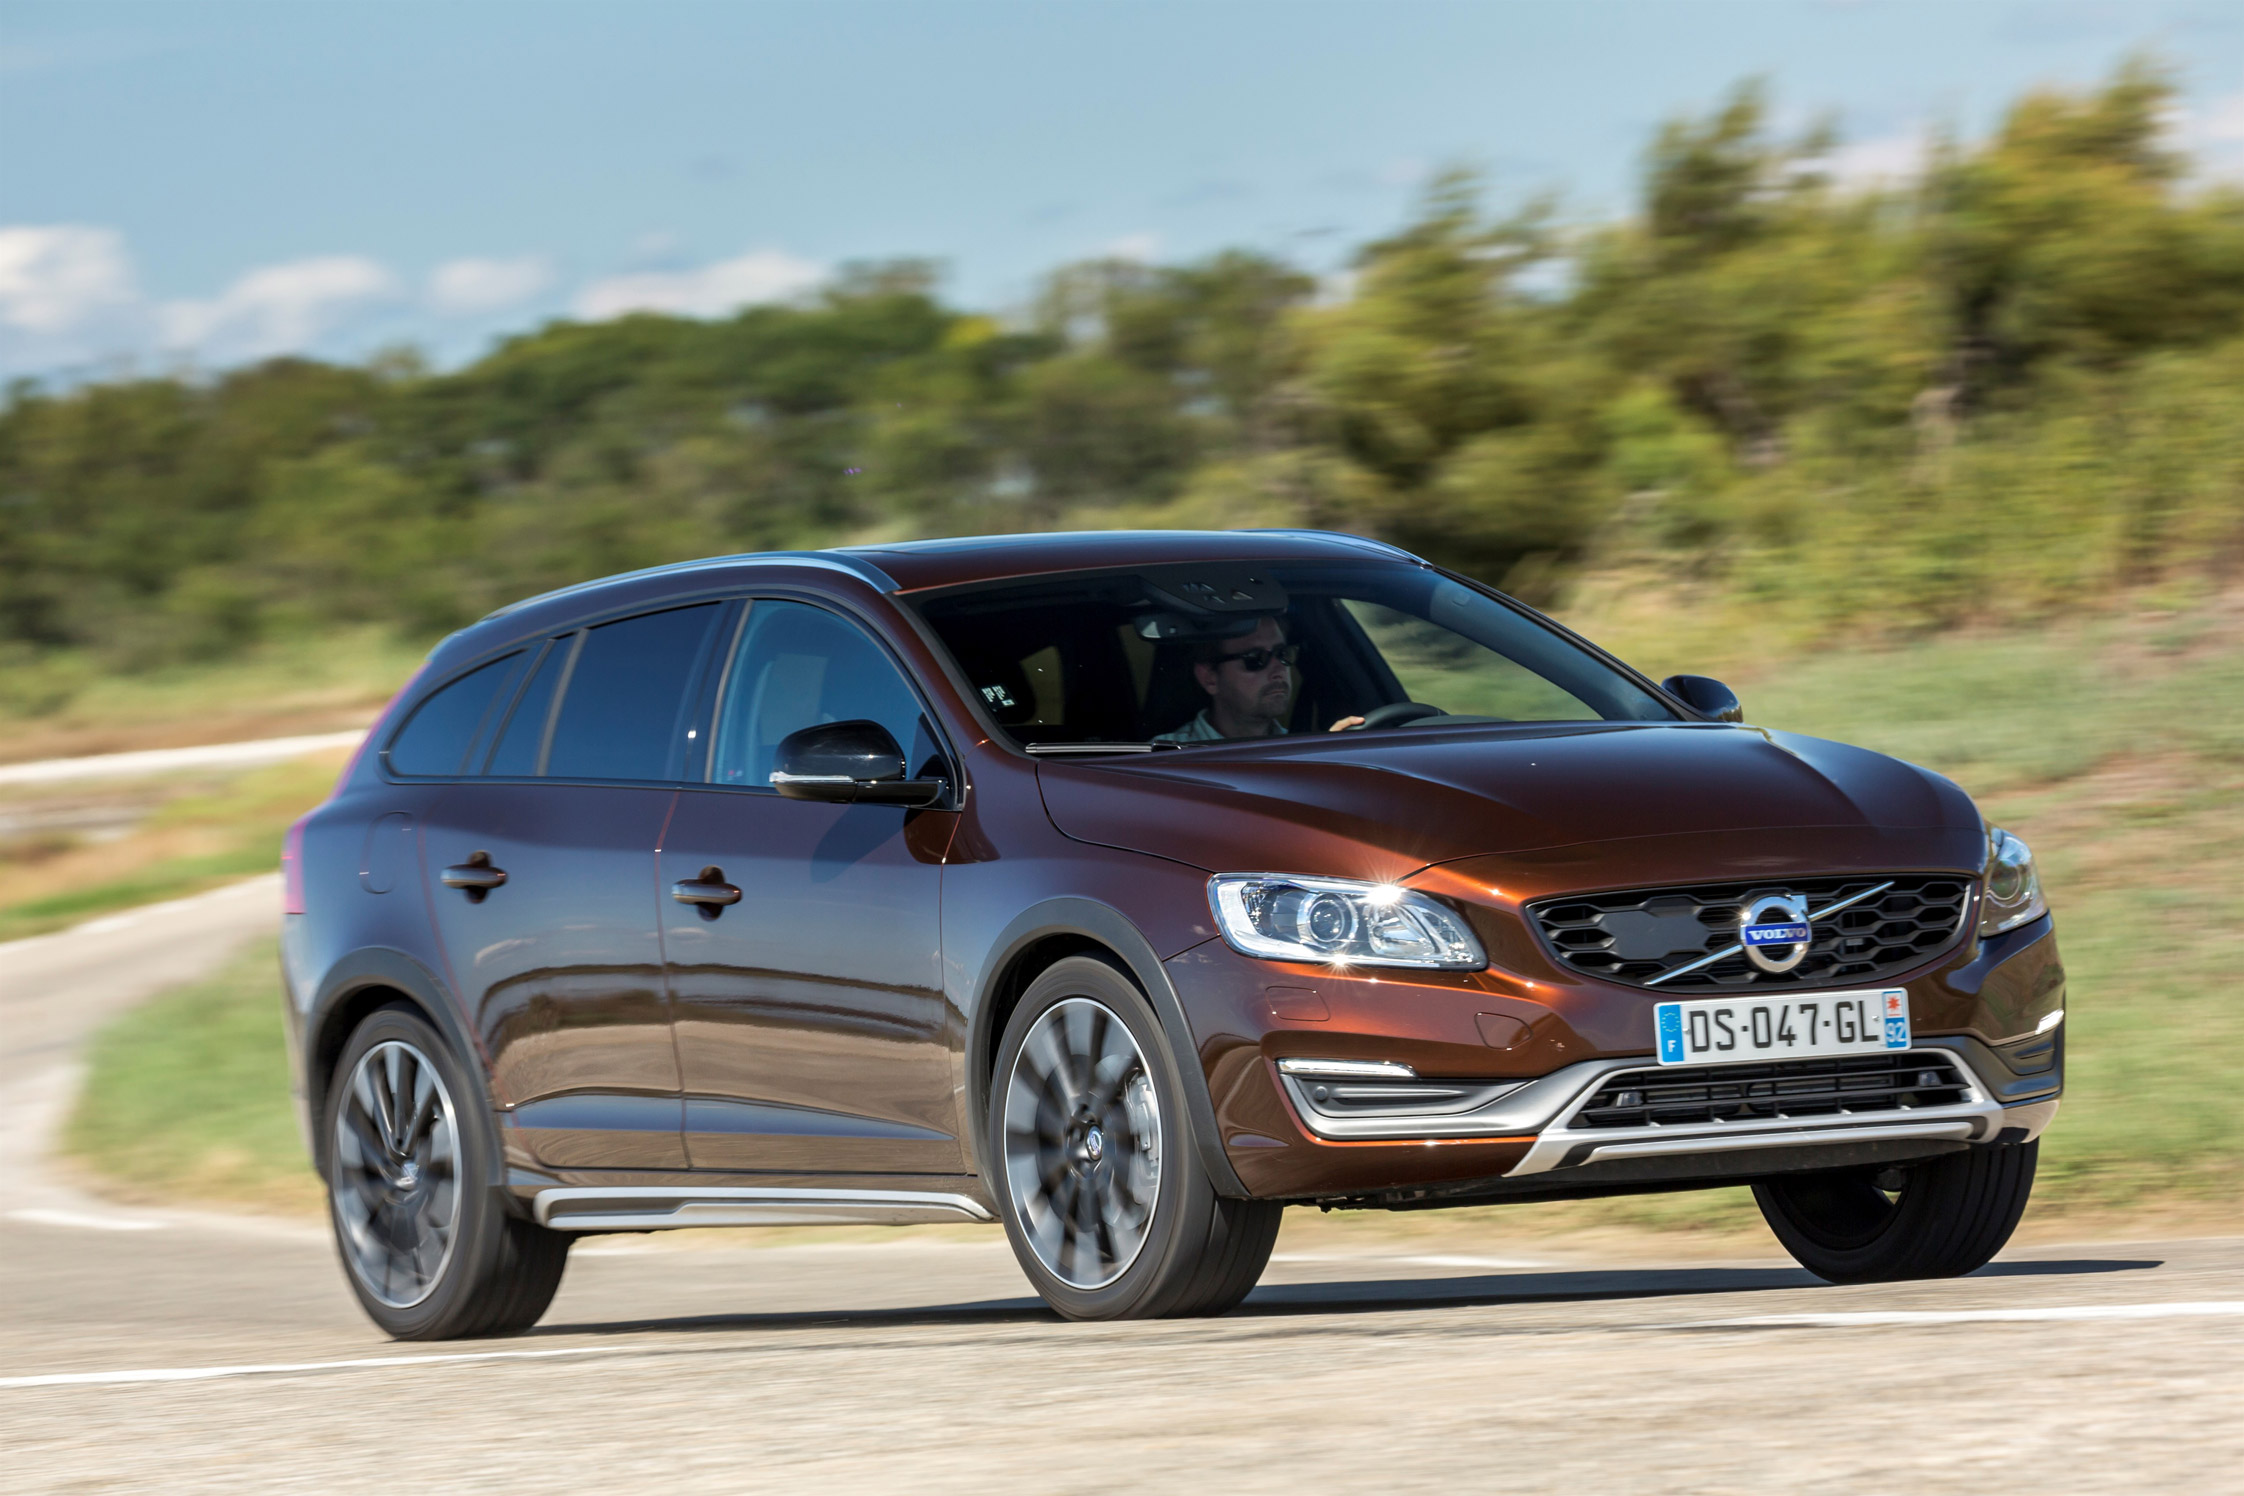 essai volvo v60 cross country motorlegend. Black Bedroom Furniture Sets. Home Design Ideas